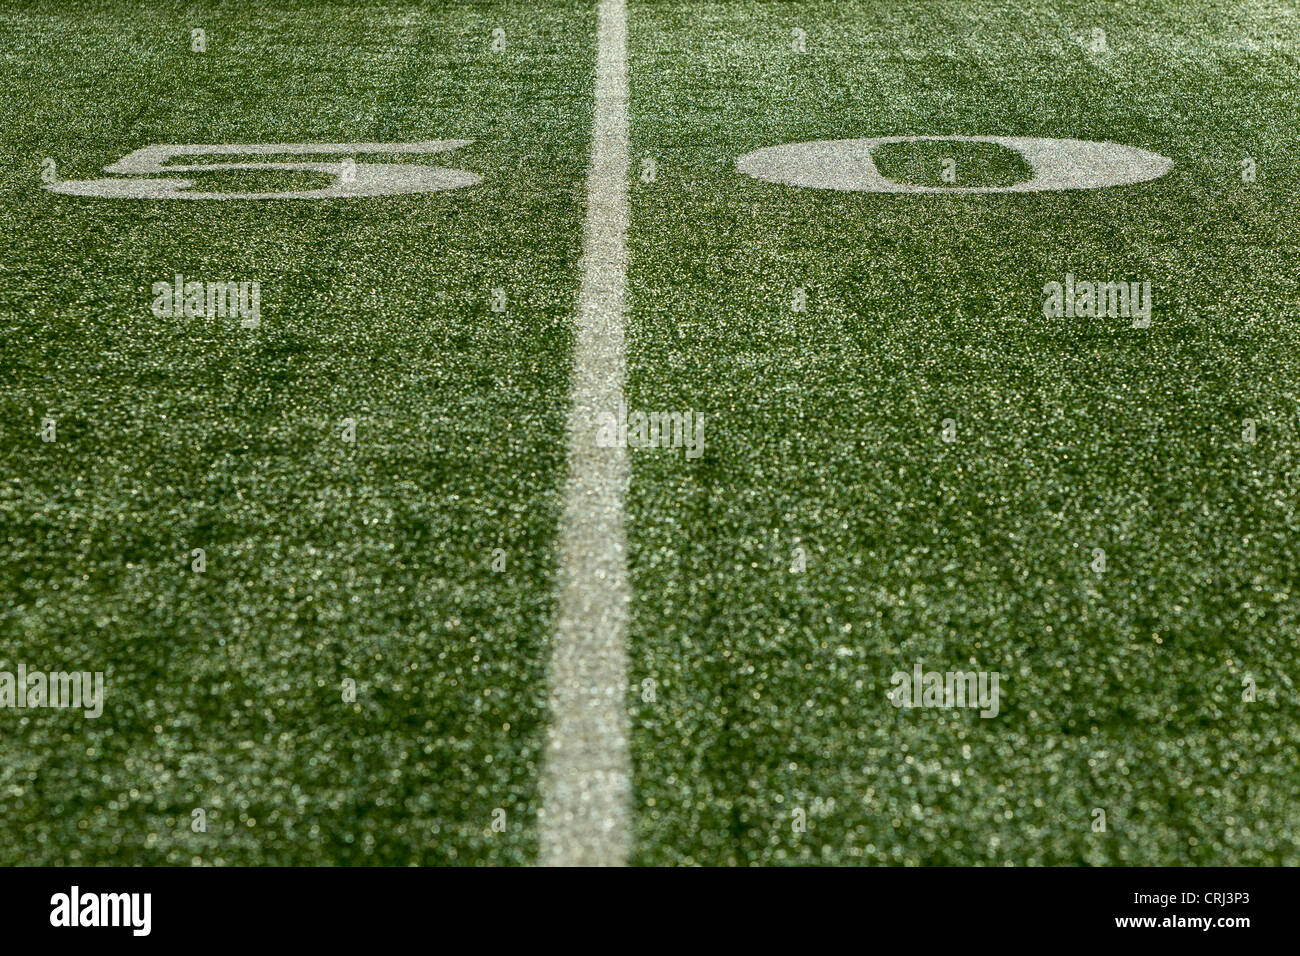 50 yard marcatore di linea in American Football Stadium. Immagini Stock